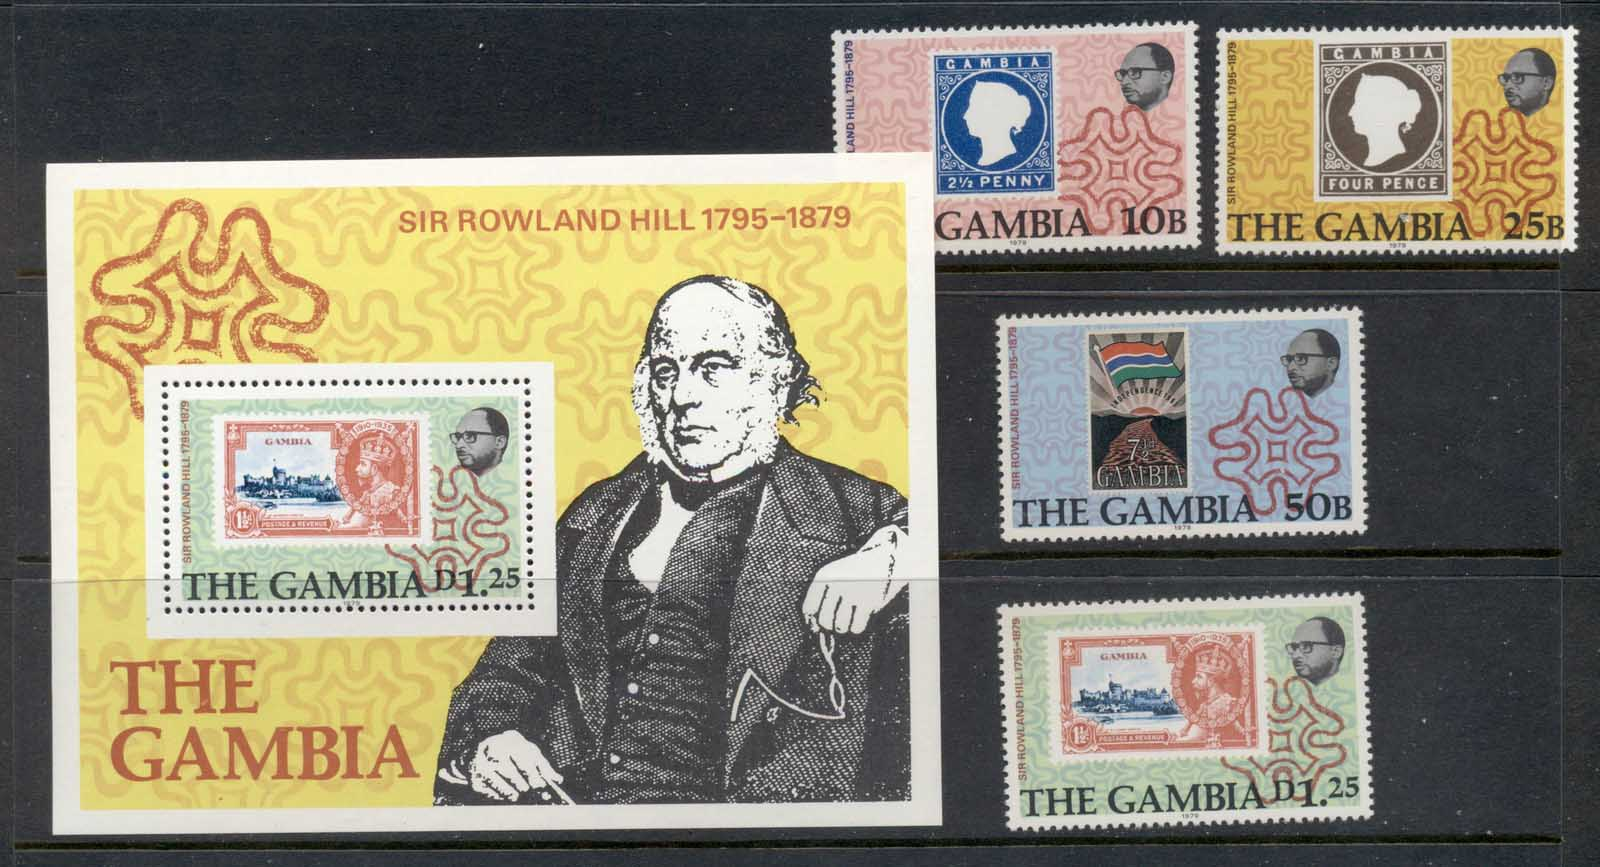 Gambia 1979 Sir Rowland Hill Death Centenary + MS MUH